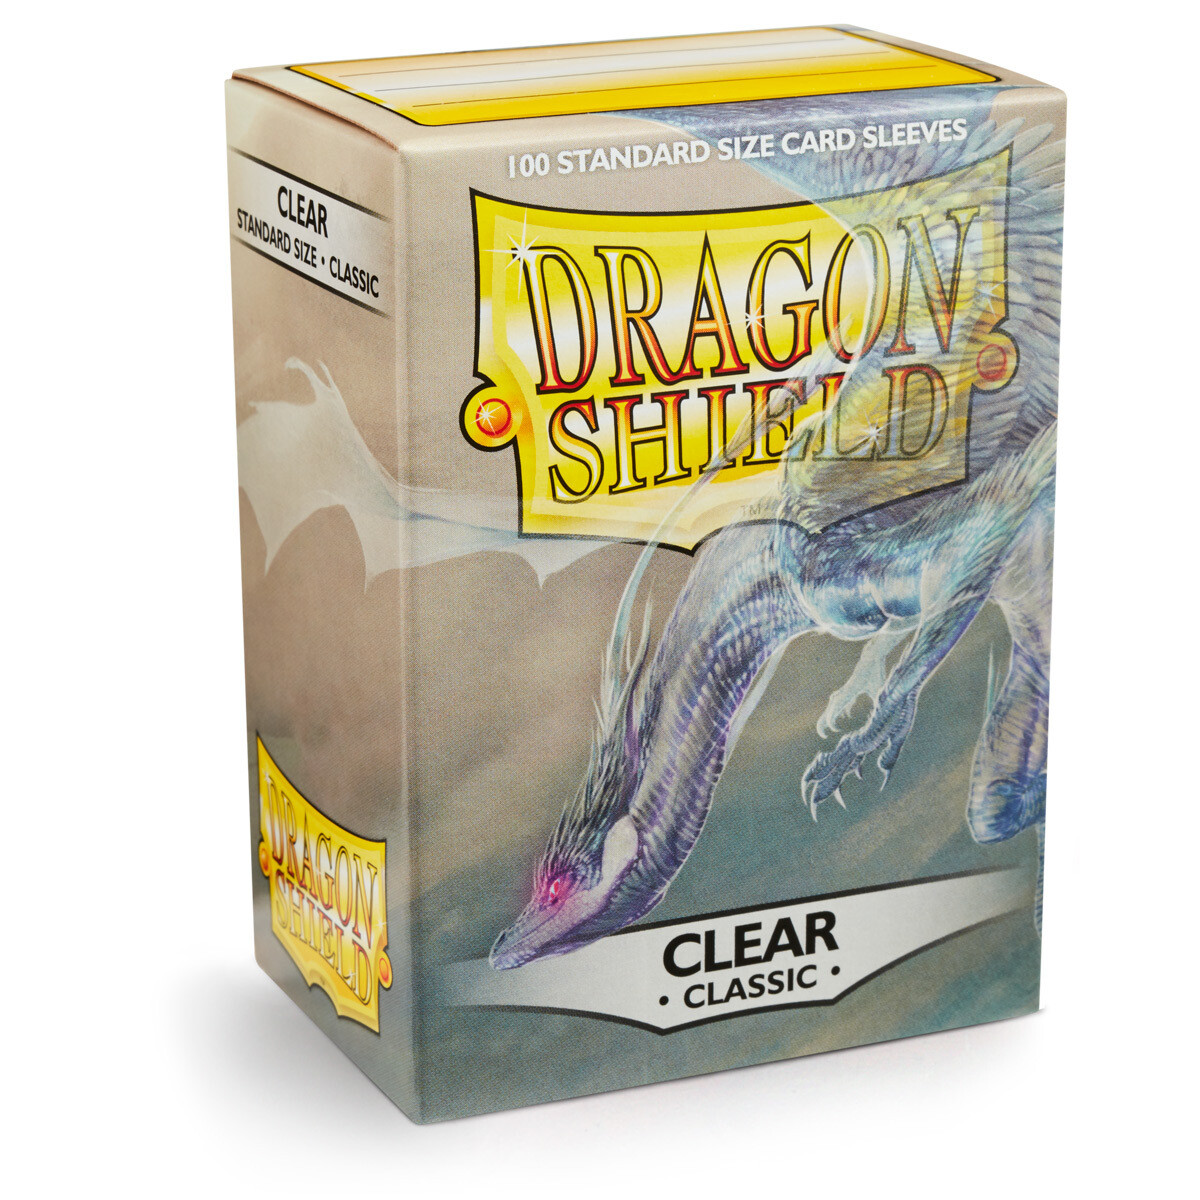 Dragon Shield 100 Sleeves - Clear